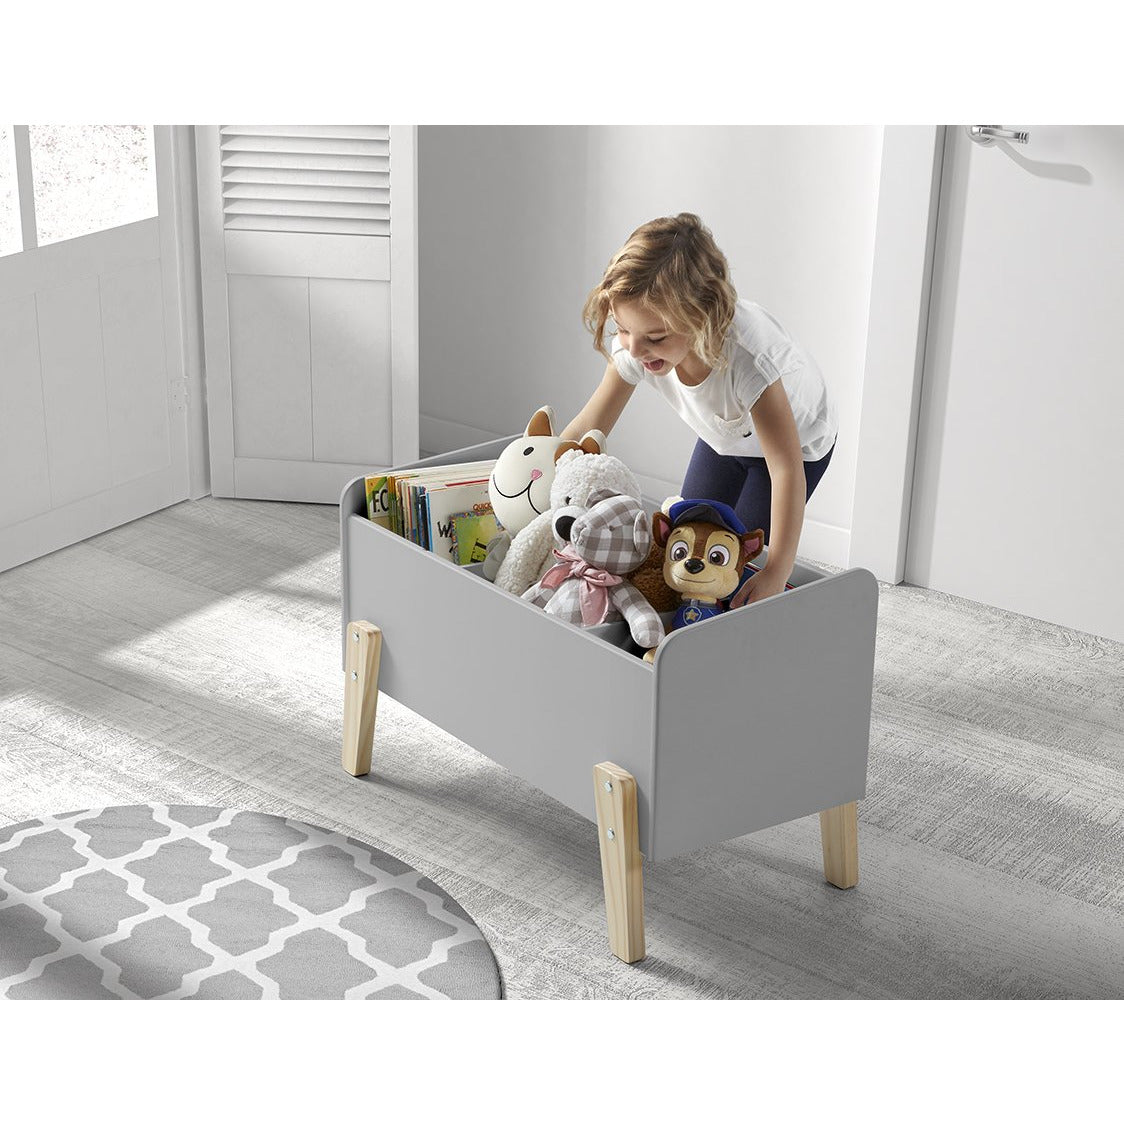 Kiddy - Wooden Kids Toy Box